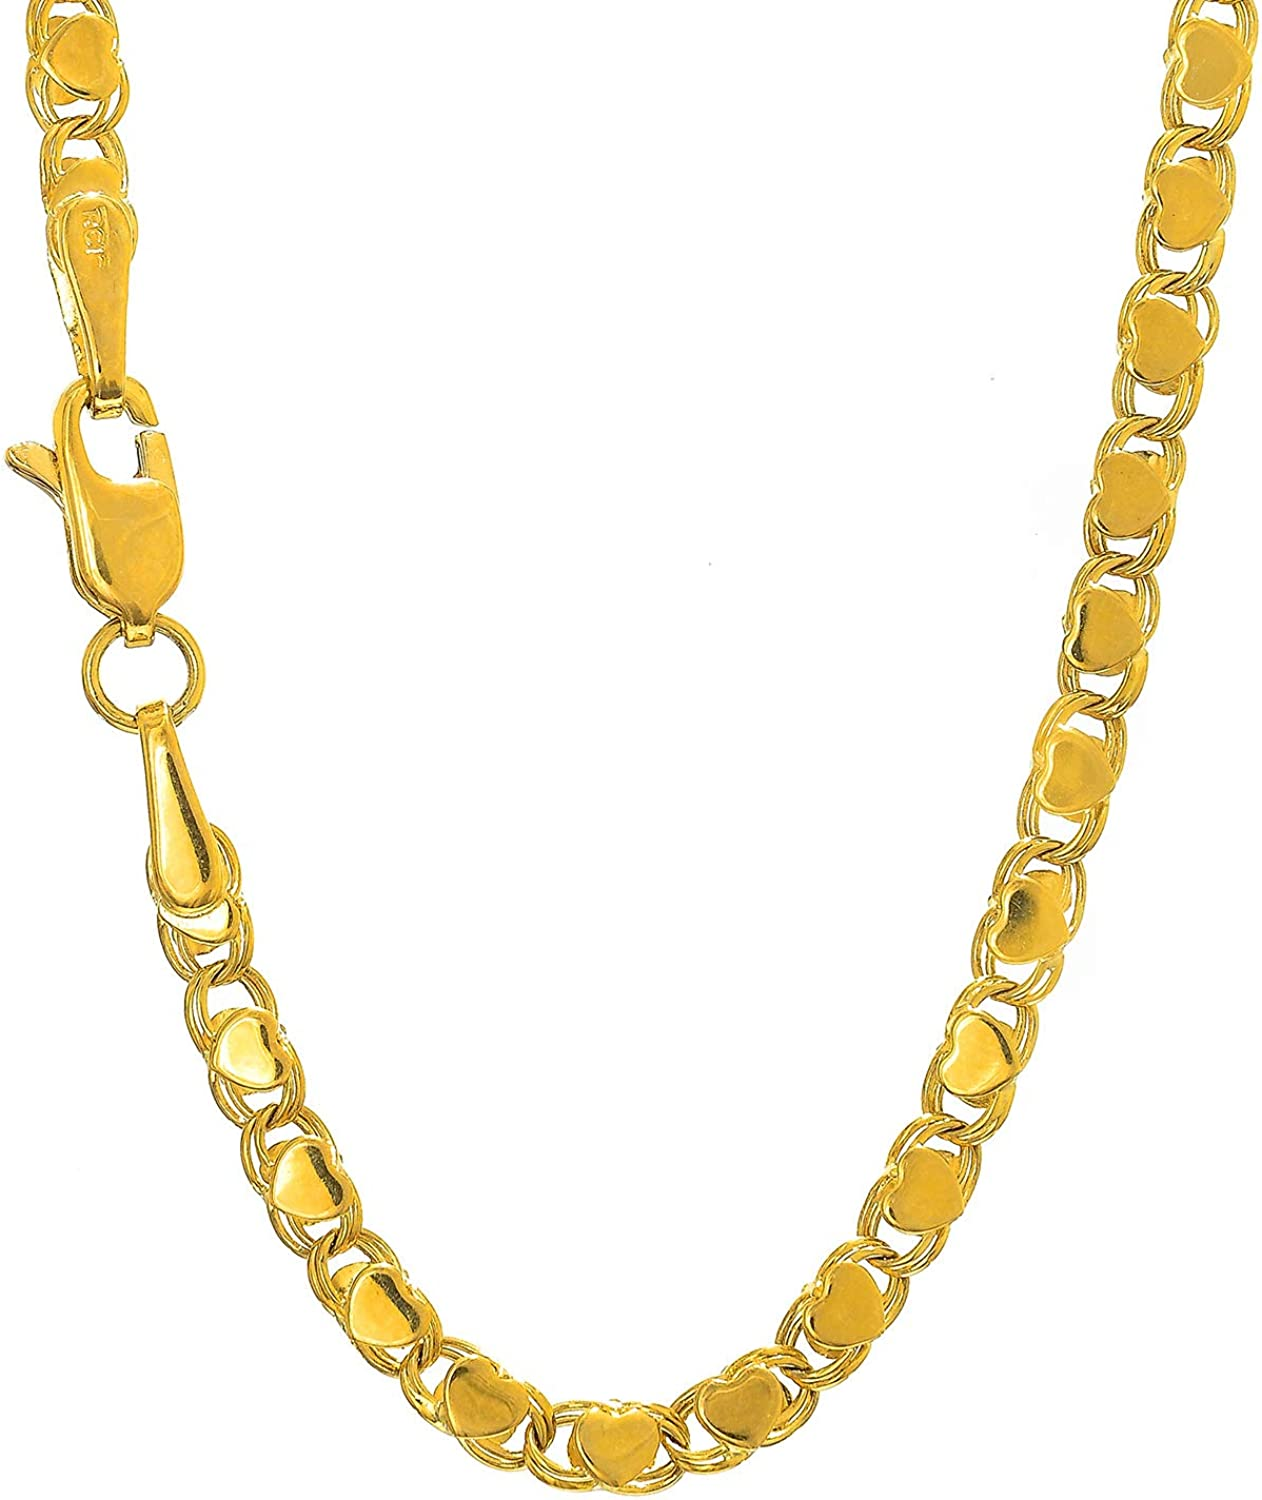 14k Solid Yellow Gold 3 mm Heart Chain Anklet Lobster Claw Clasp 3.8gr. 10 Inches